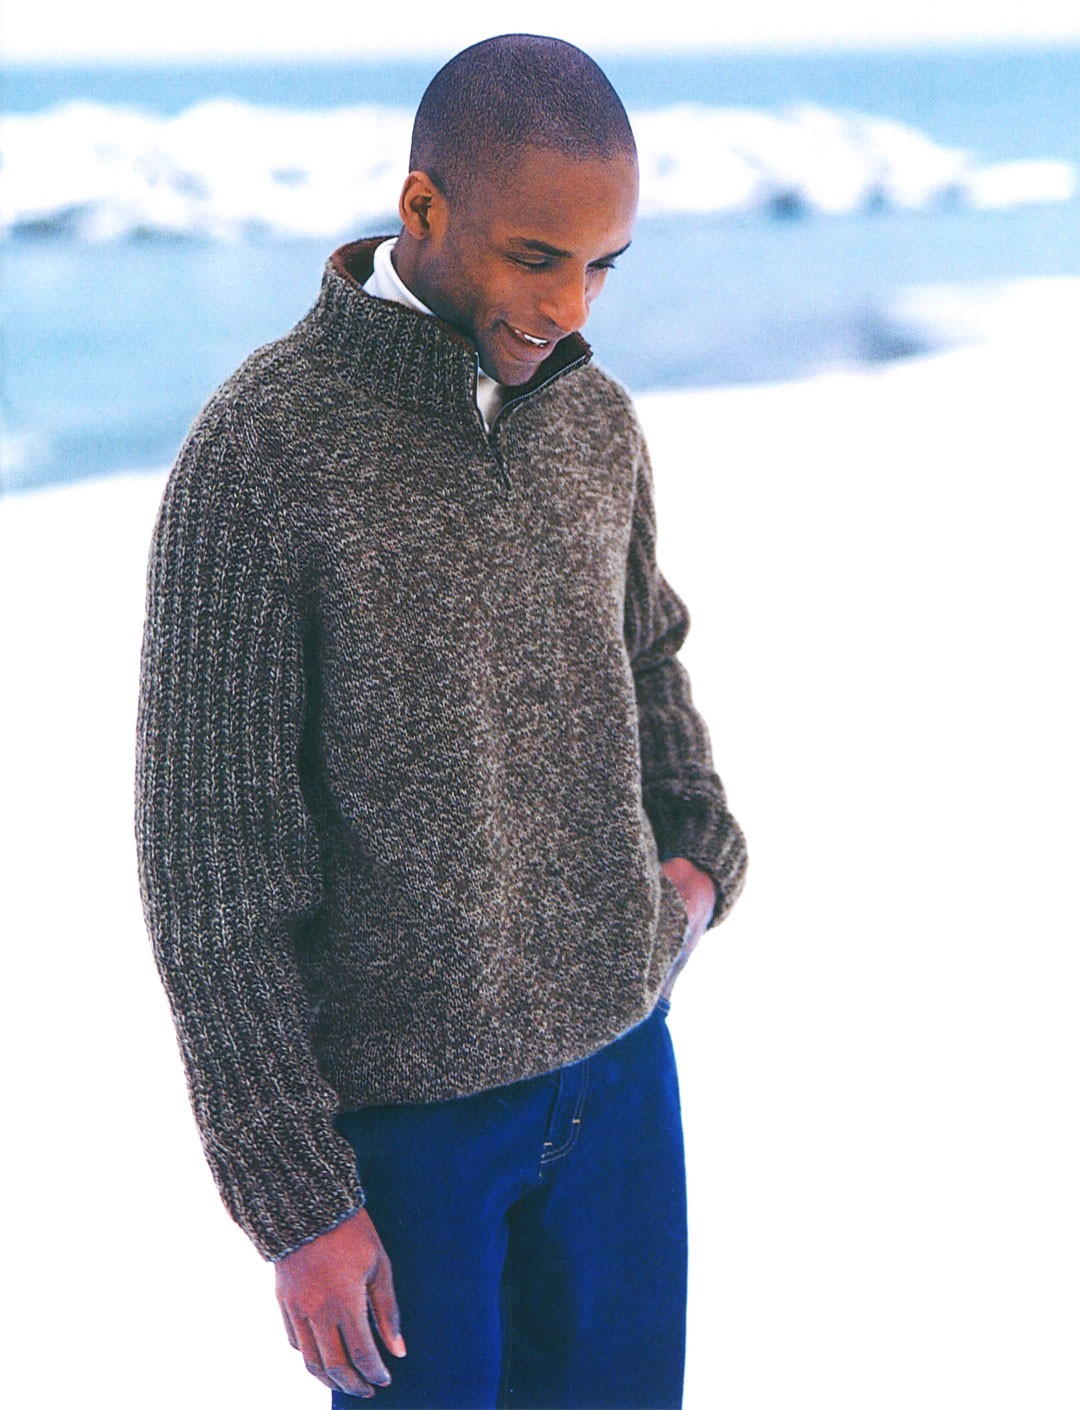 Knitting Patterns For Mens Half Sweaters : Zip Neck Saddle Shoulder (Pattern) Yarnspirations